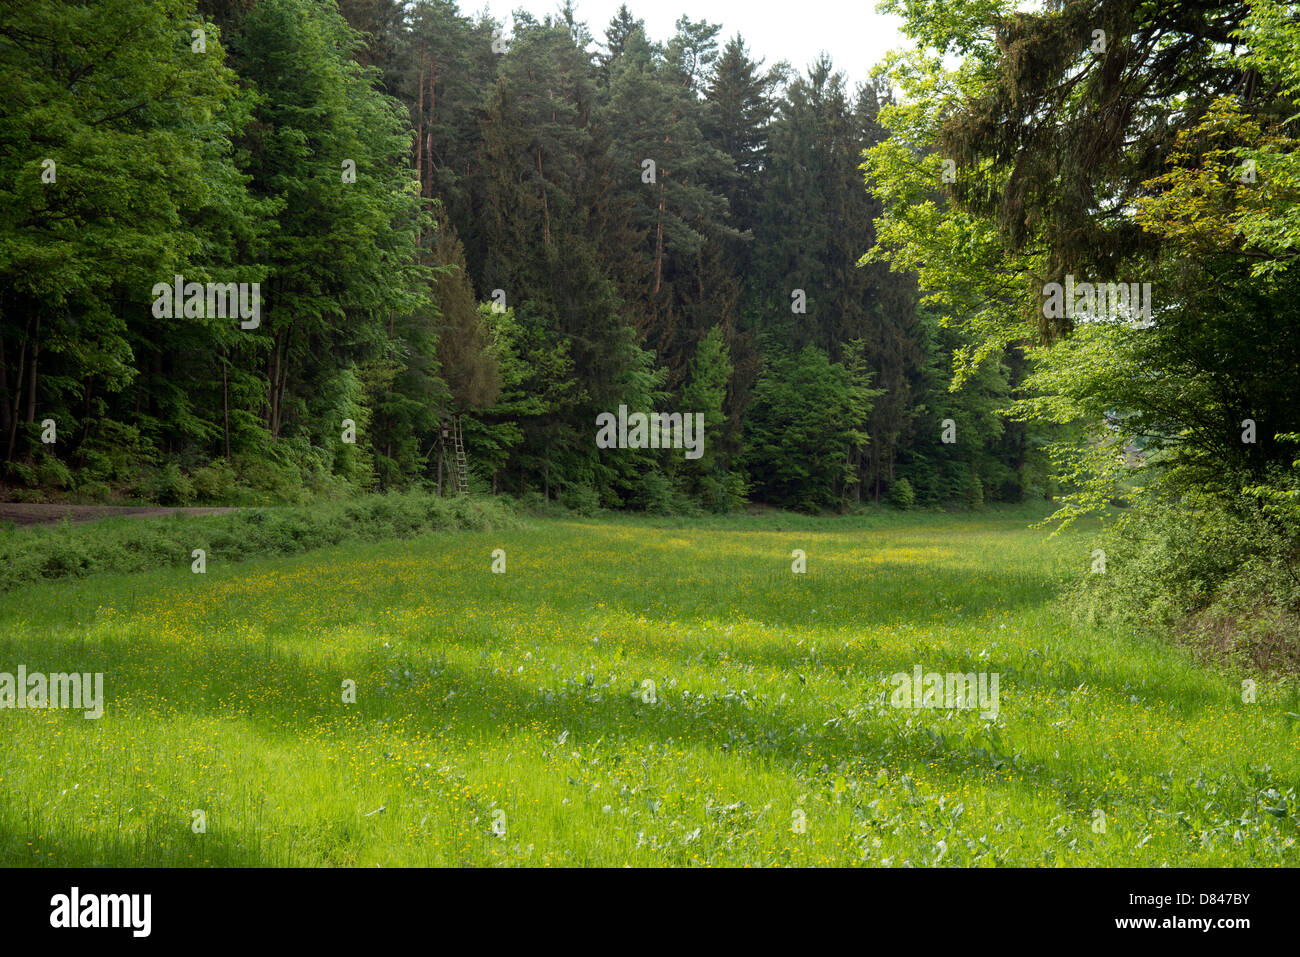 Green meadow field clearing in conifer forest with dirt road in Germany. Stock Photo